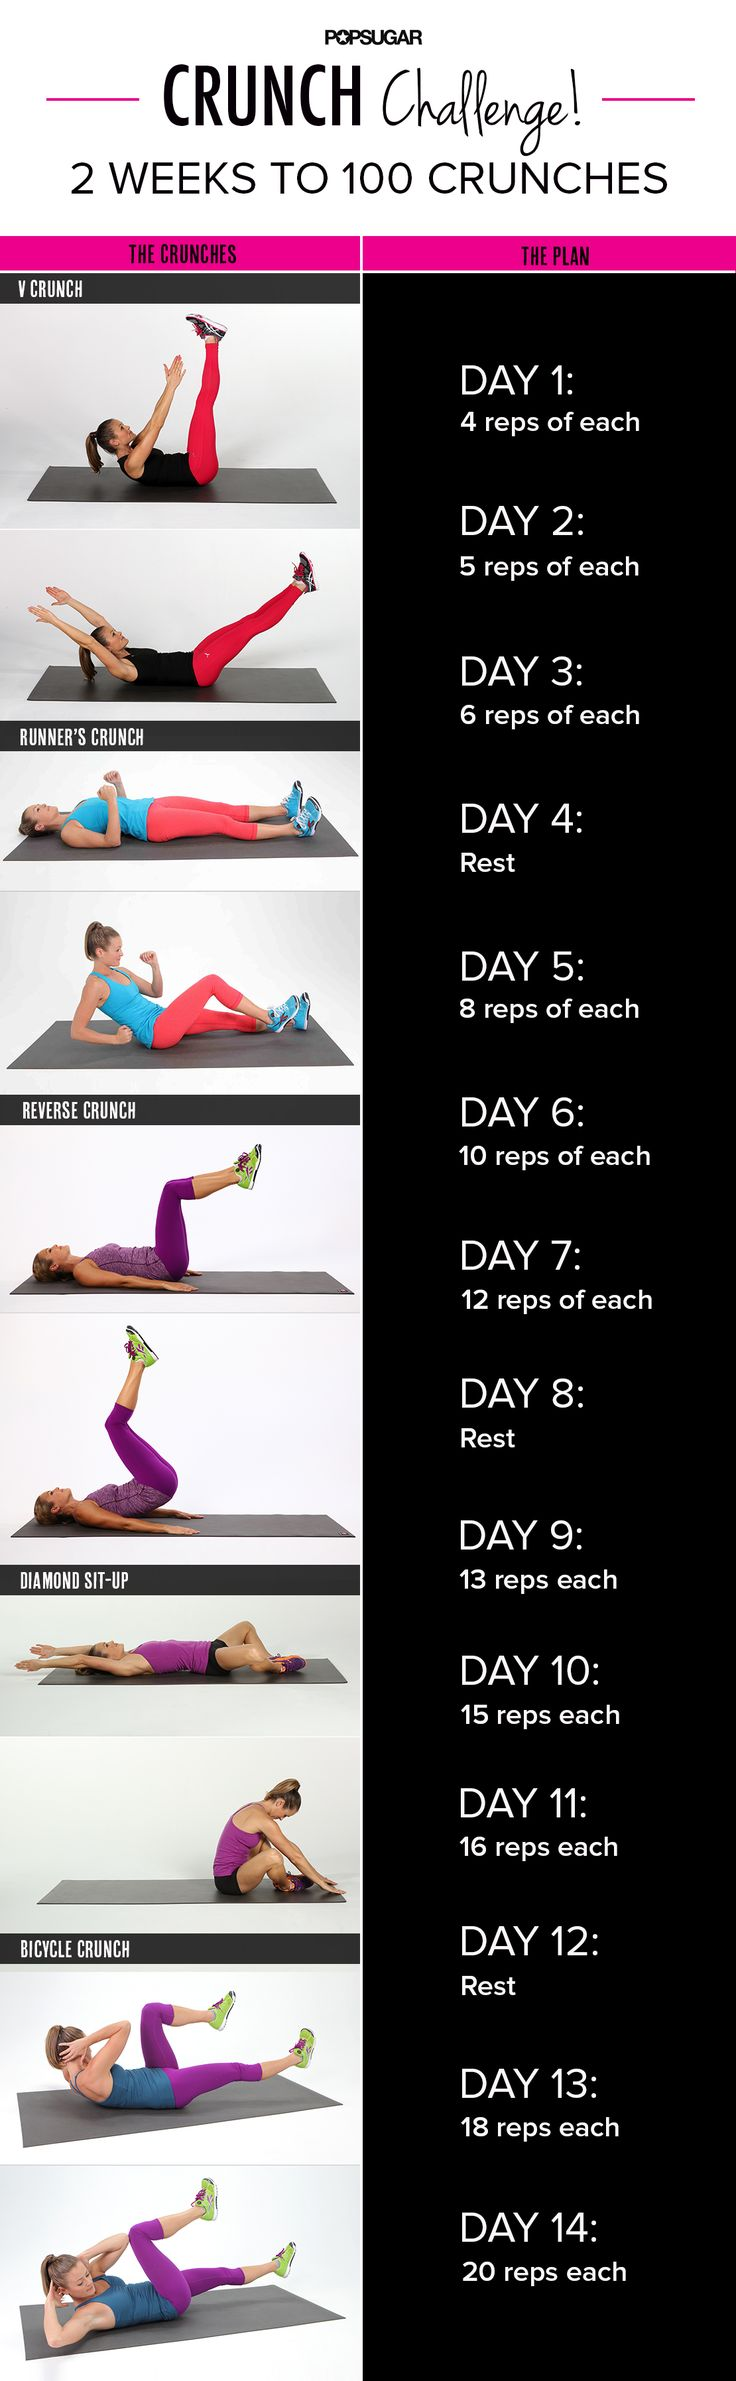 2-Week Challenge to 100 Crunches